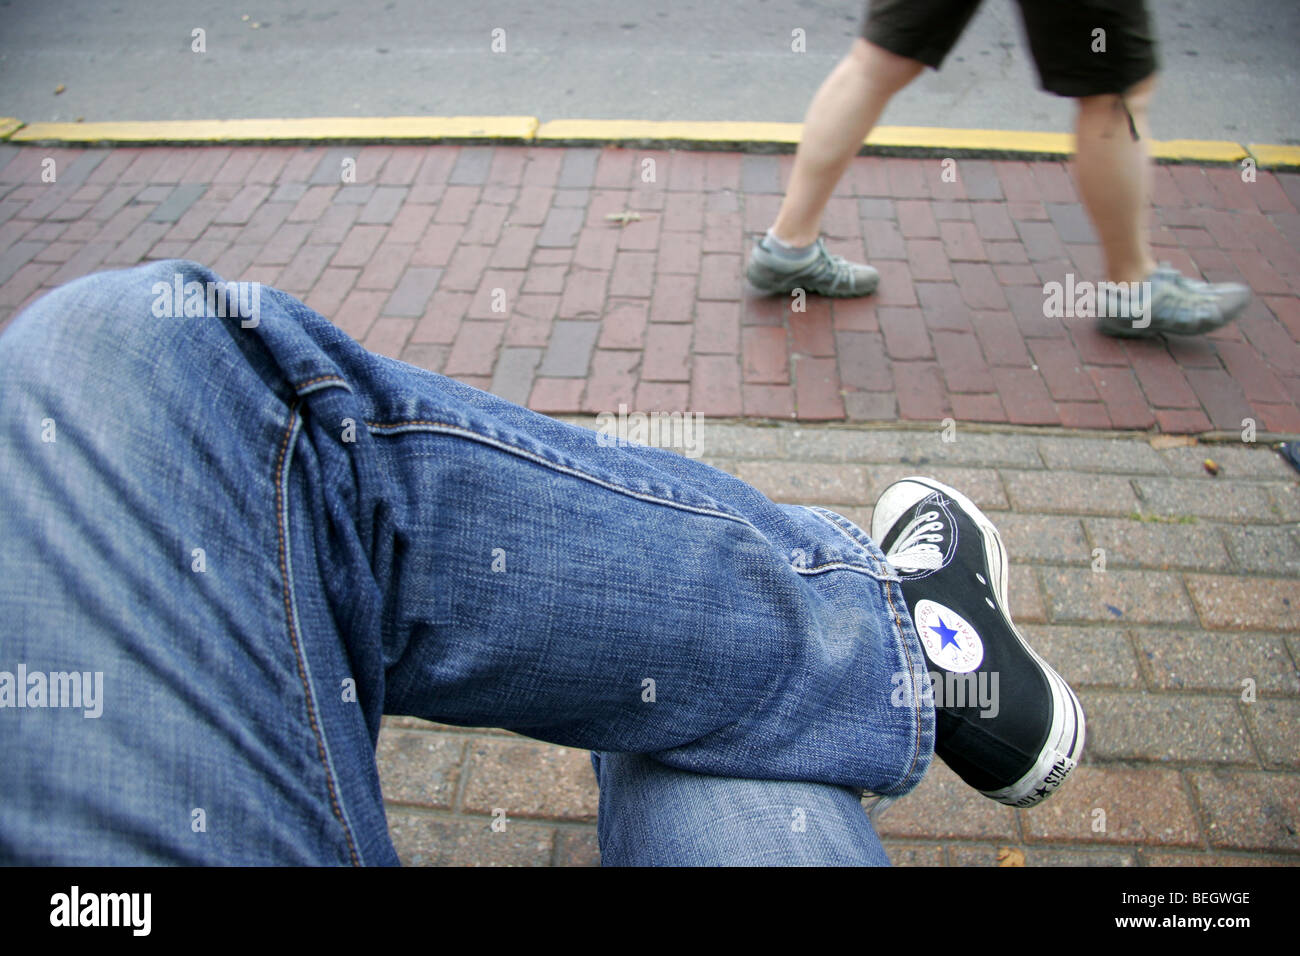 3e57dce17b0 Person in jeans and Converse shoes sitting crossed legged outside as a  second person walks past.